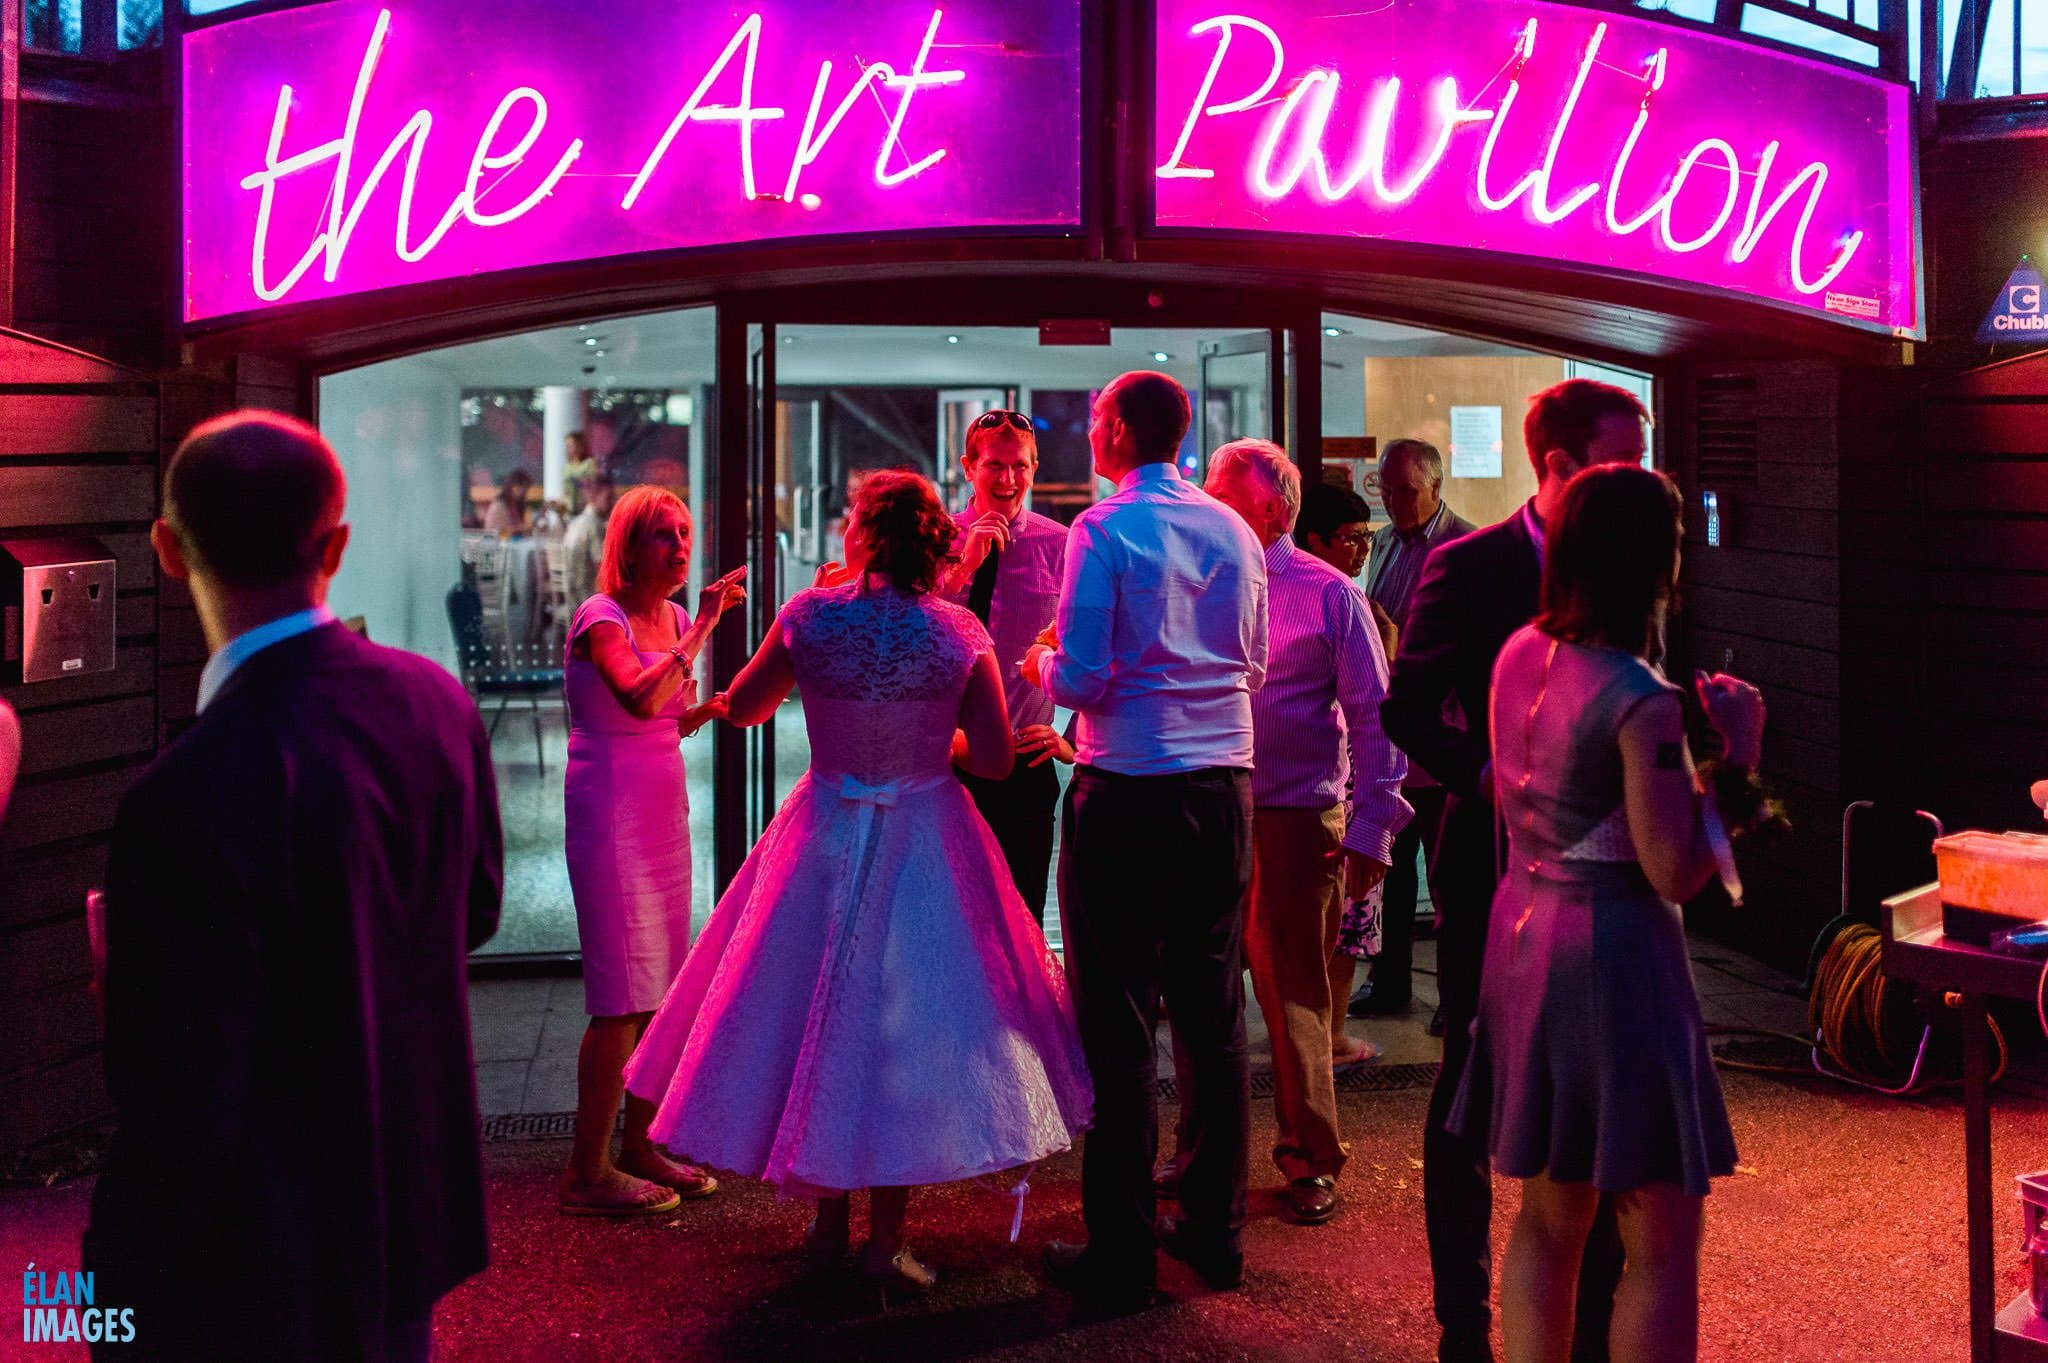 Mile End Art Pavilion Wedding, London 212